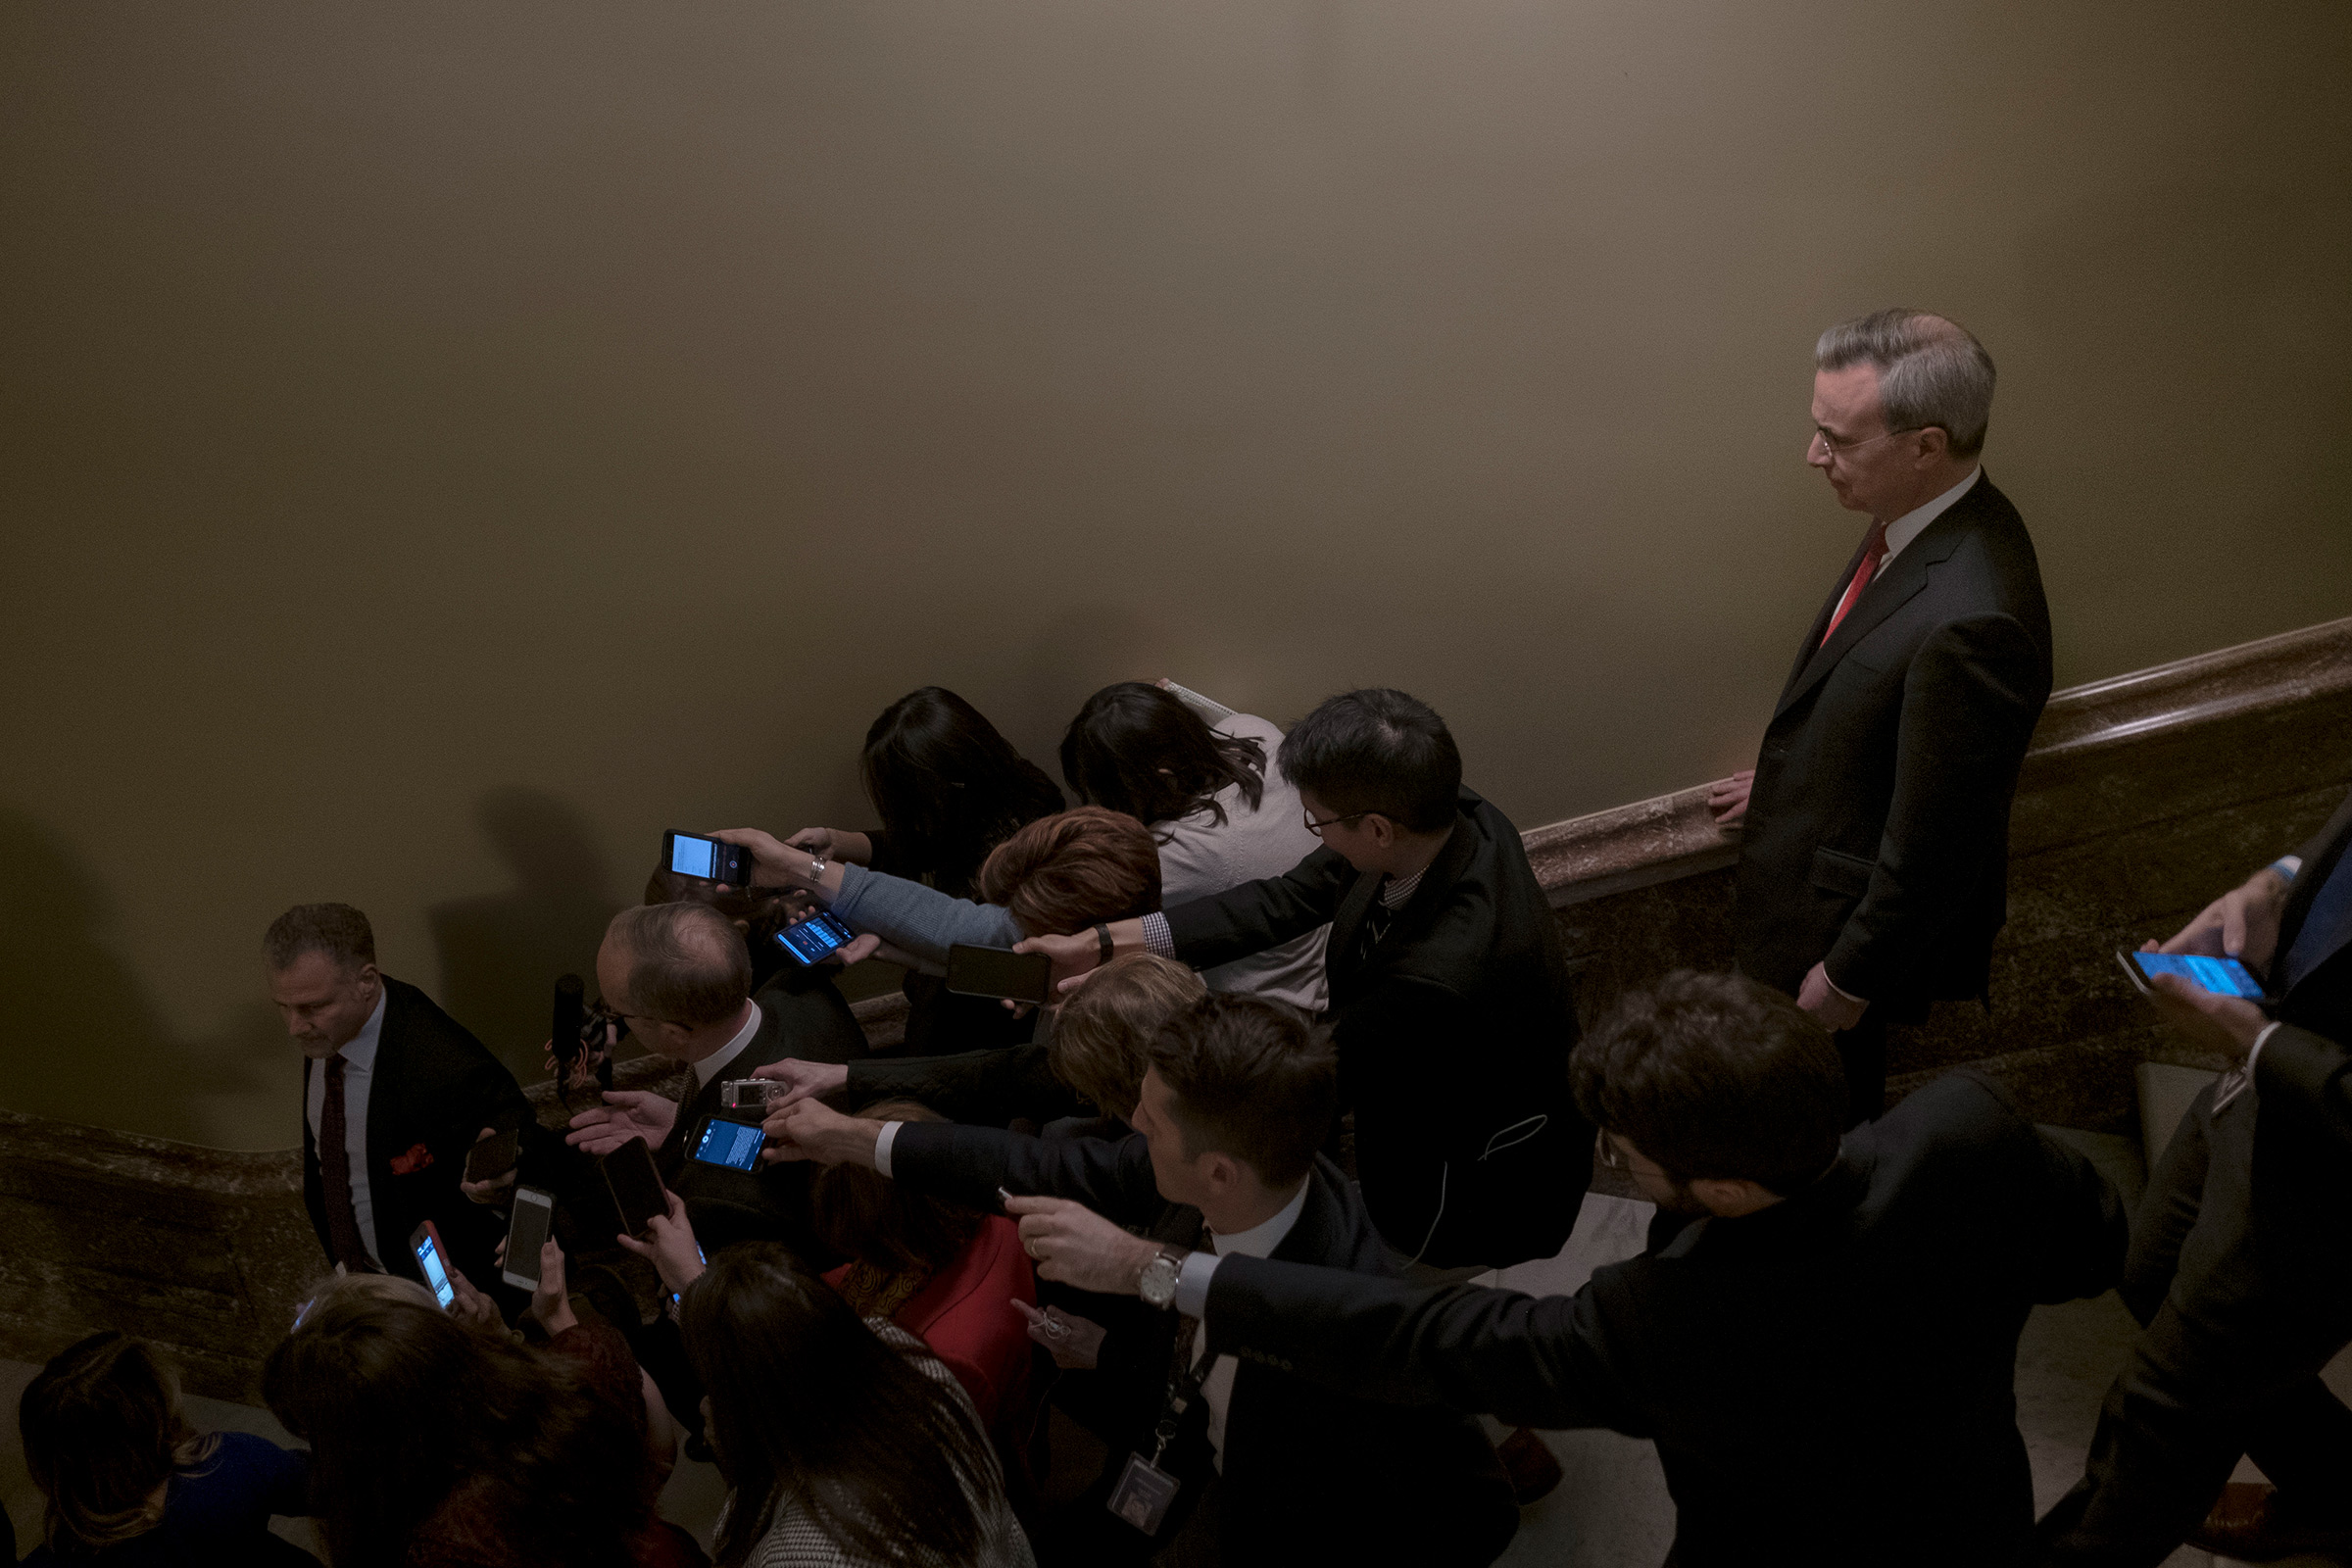 White House lawyer Pat Cipollone keeps his distance as Eric Ueland, Director of White House Legislative Affairs, speaks to reporters after a meeting with Senate Majority Leader Mitch McConnell (R-Ky) at the Capitol in Washington, D.C., on Dec. 12, 2019.